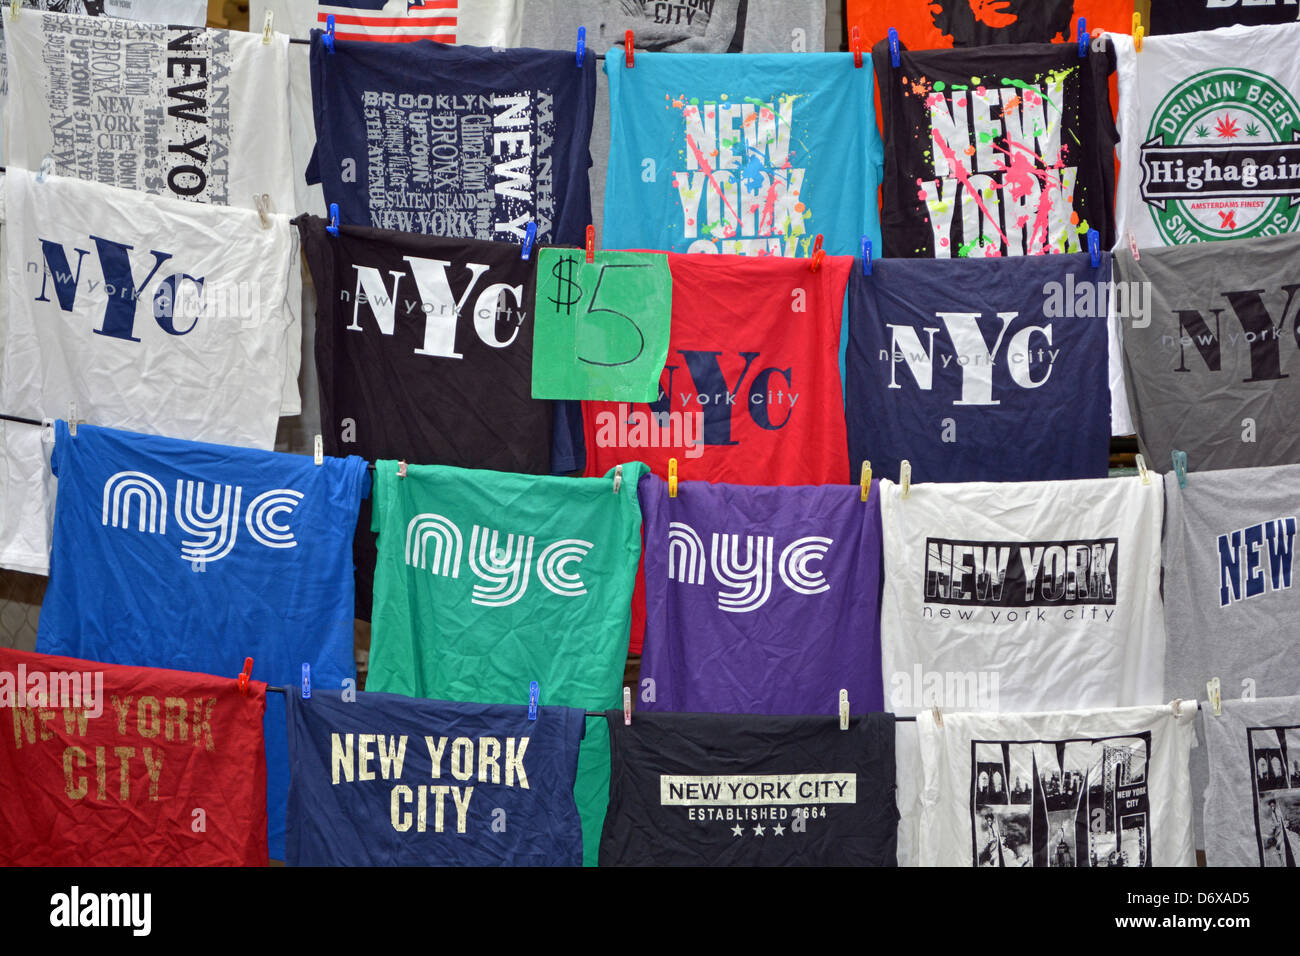 New York City t-shirts for sale at a street fair in Greenwich Village in New  York City. 6c79bd107b7